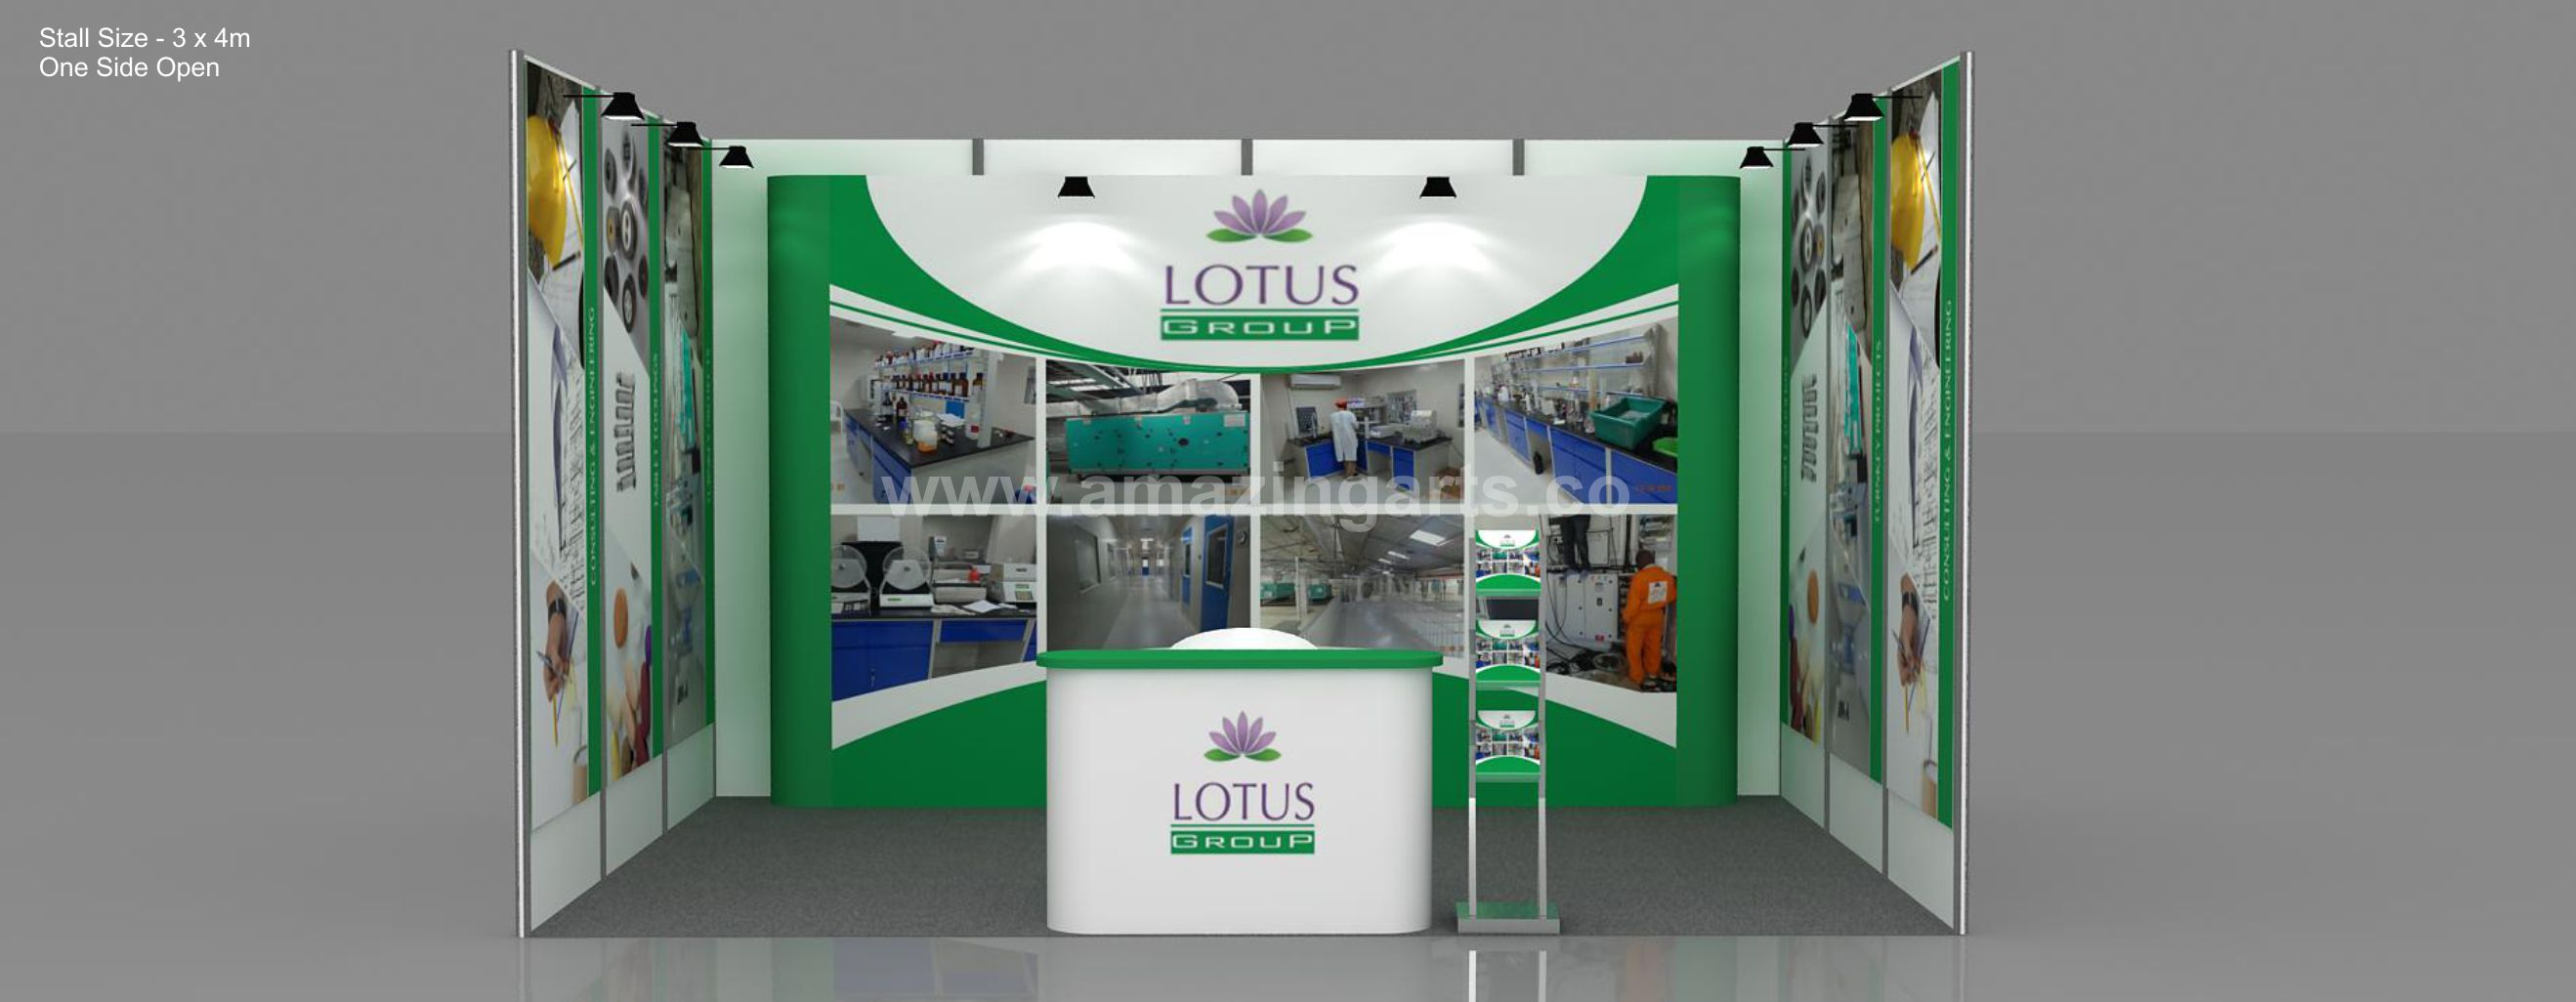 Portable Exhibition Stands Dubai : Exhibition booth fabricator exhibition stall designer